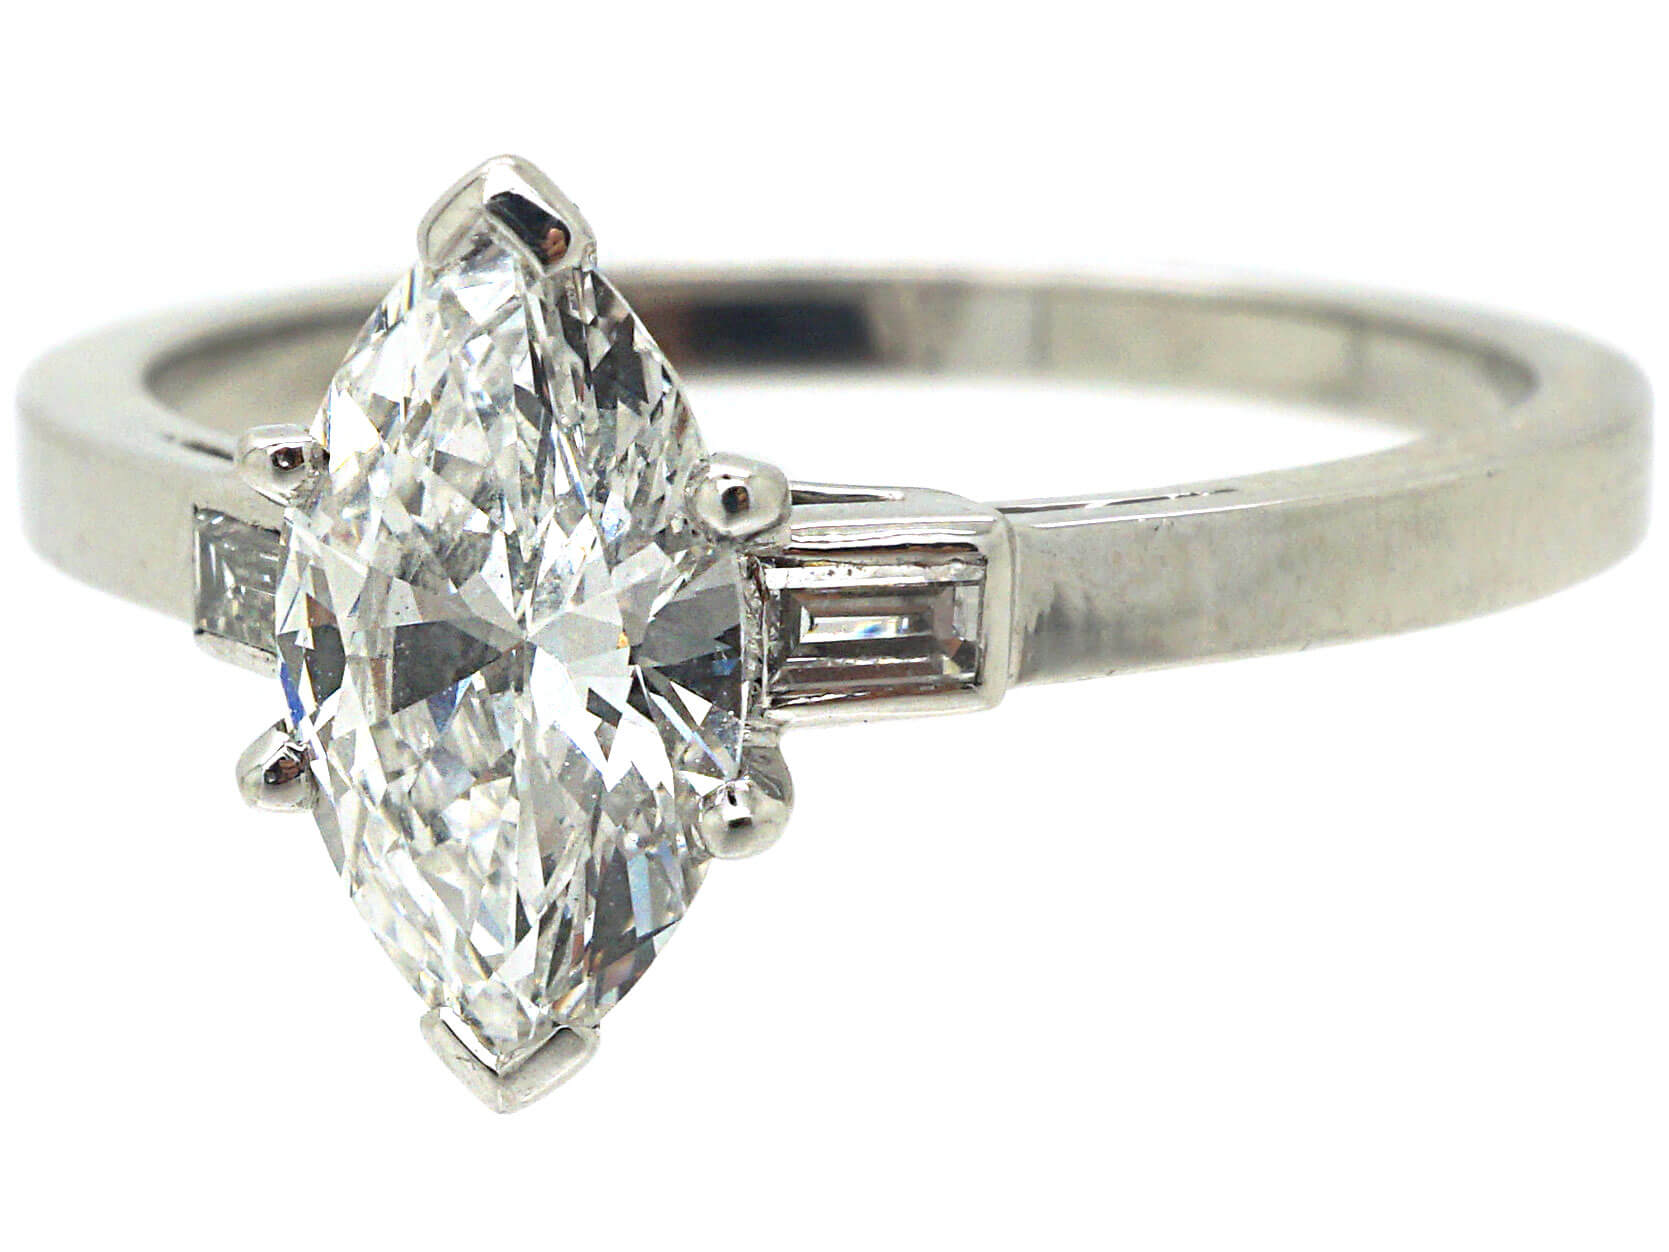 French Platinum, Marquise Diamond Ring with Baguette Diamond set Shoulders